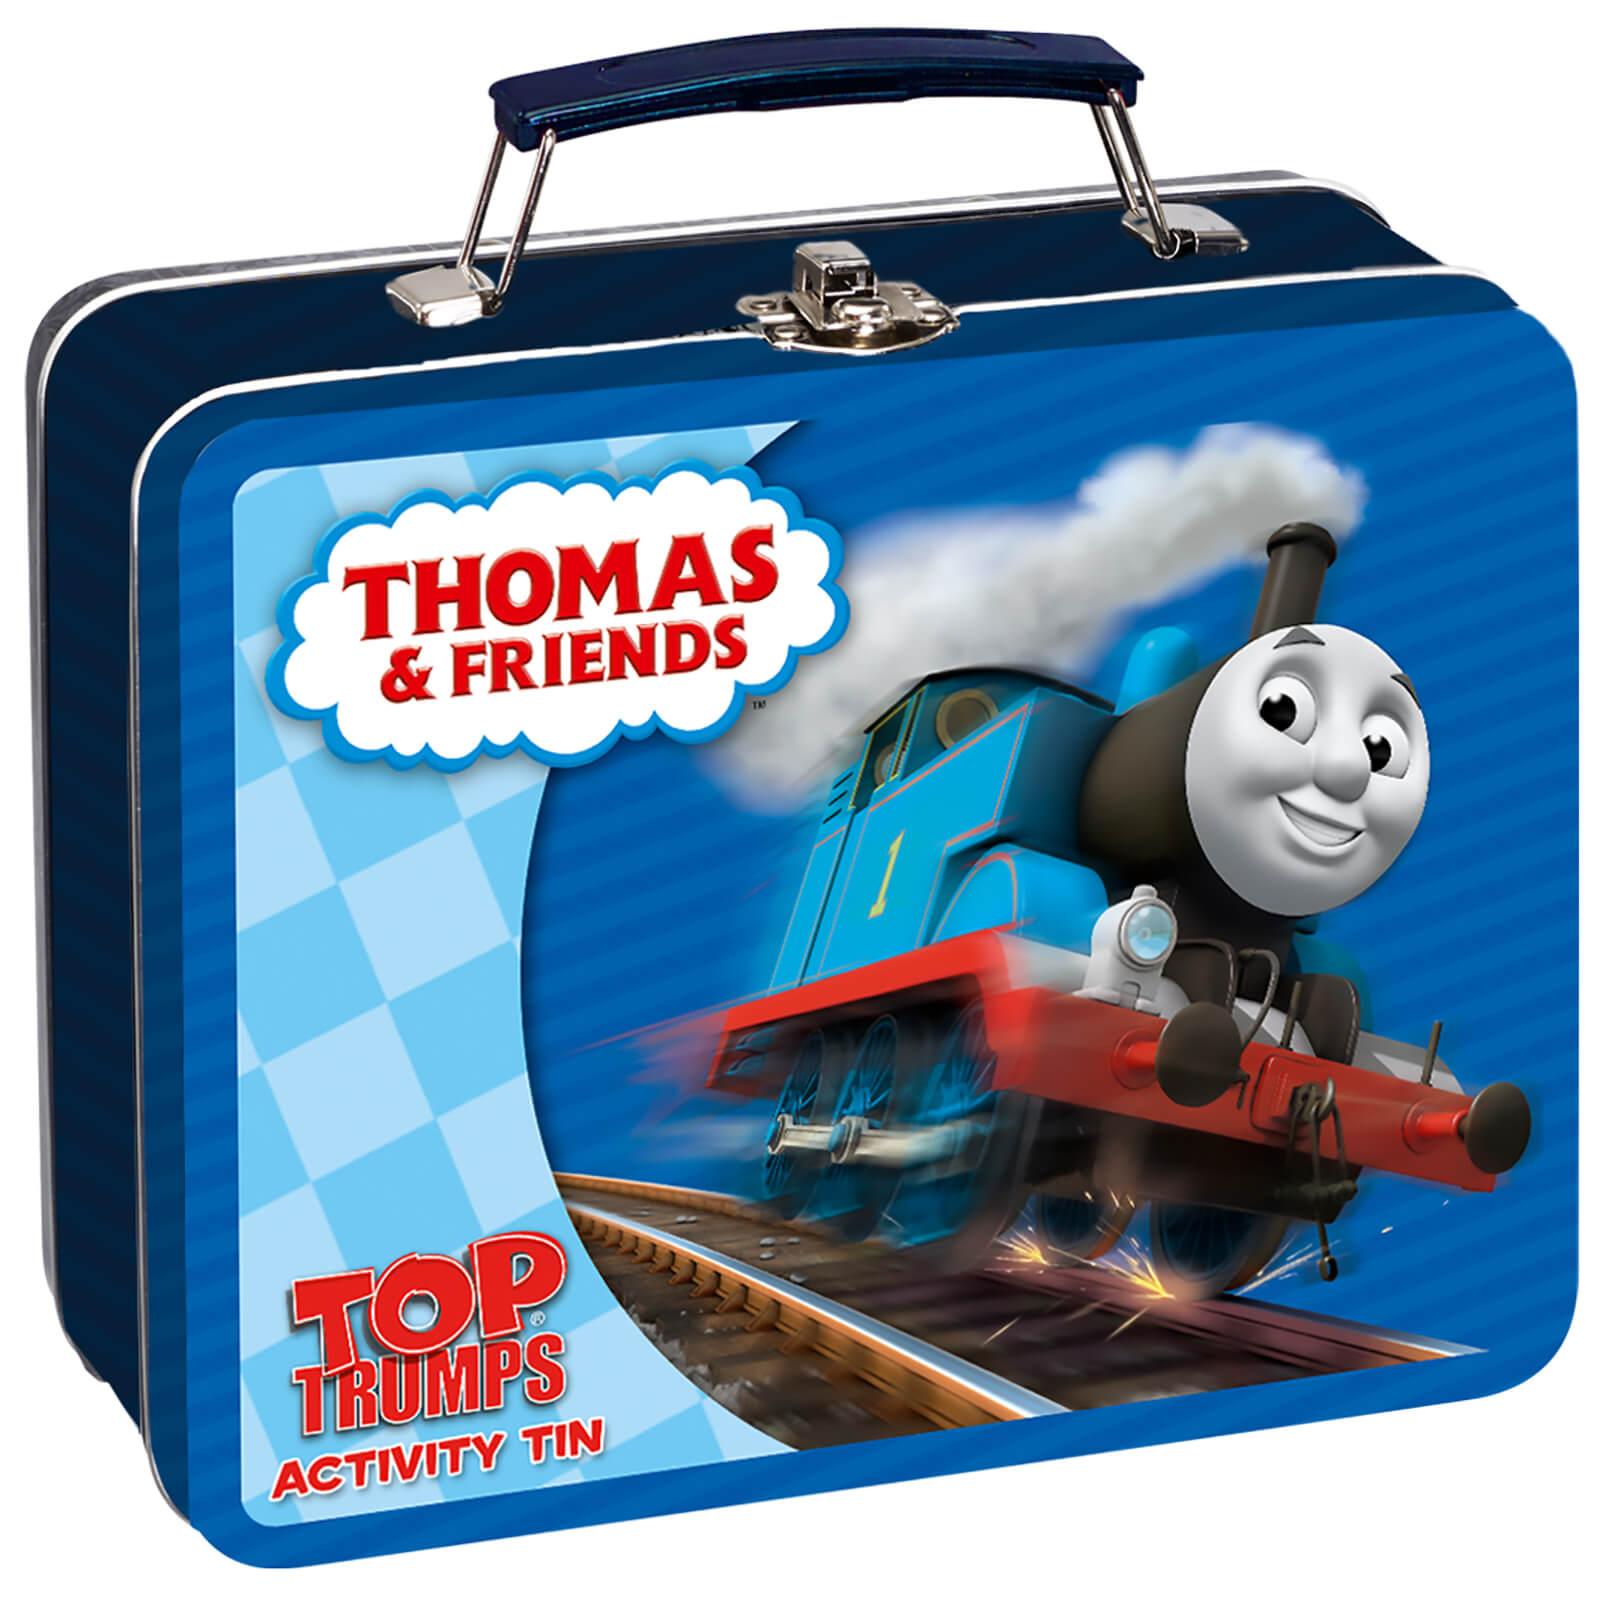 Top Trumps Activity Tin - Thomas and Friends